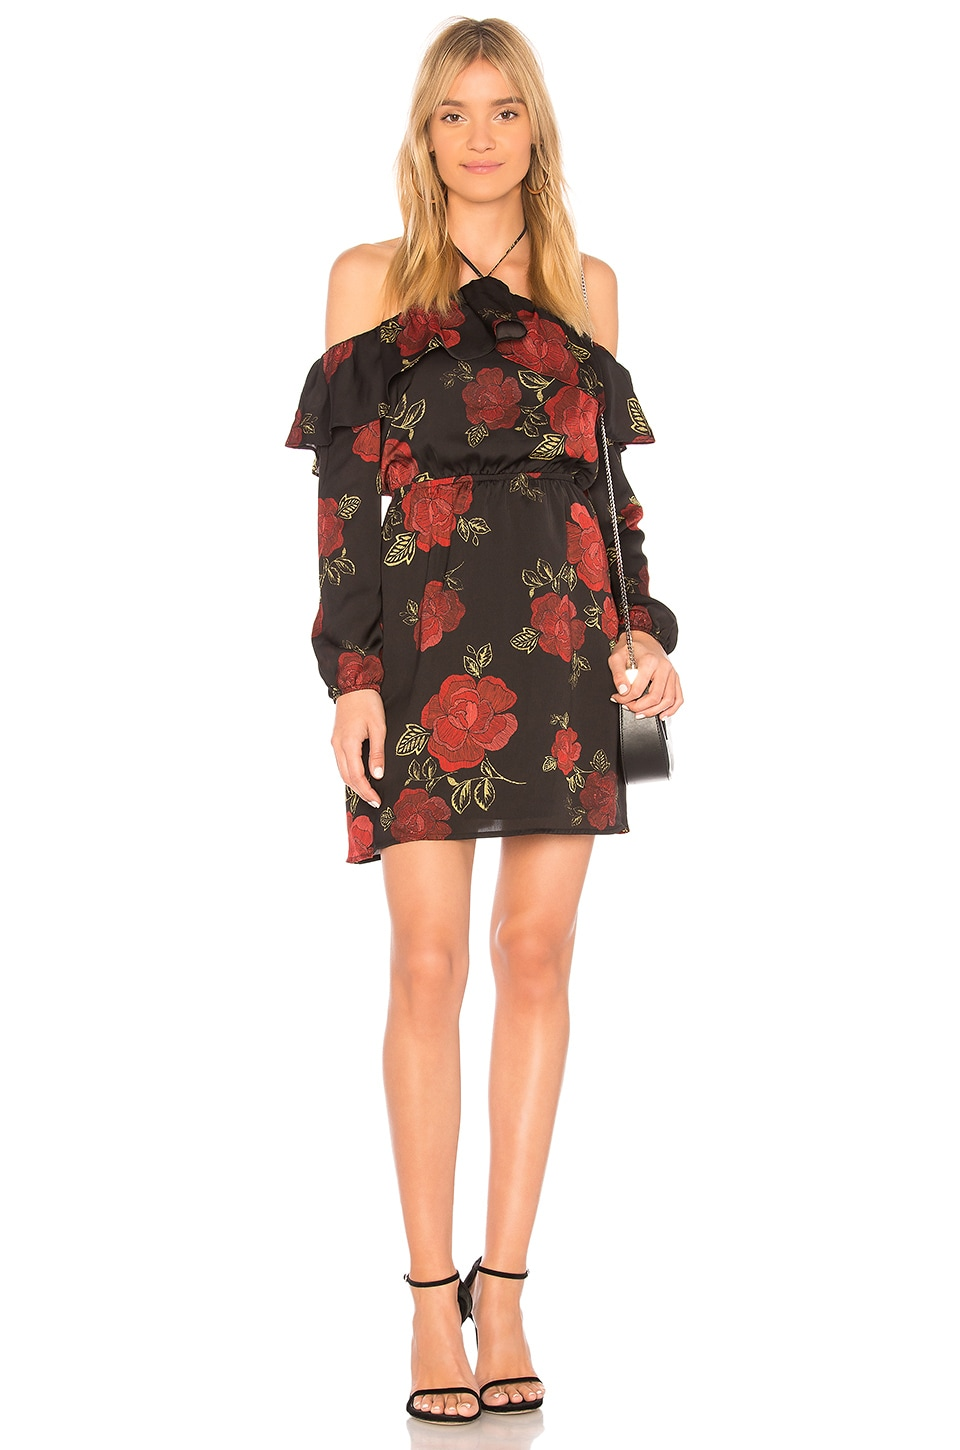 Boden Dress by cupcakes and cashmere